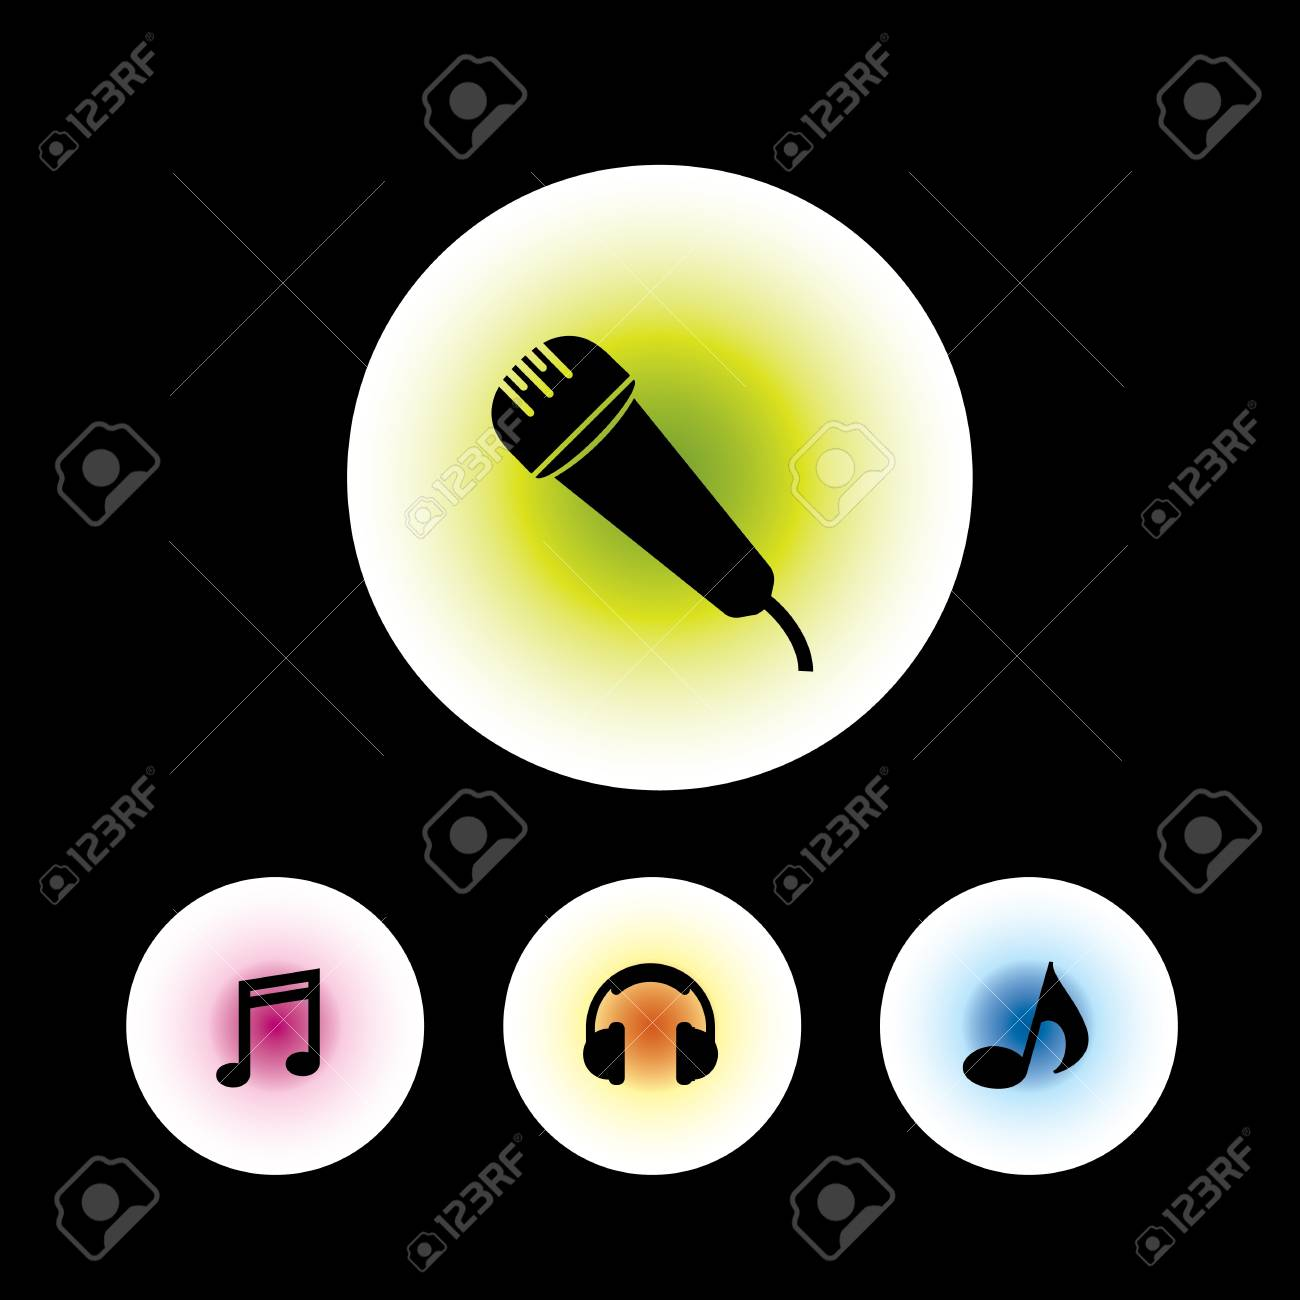 icon set in black background for use Stock Vector - 20780305